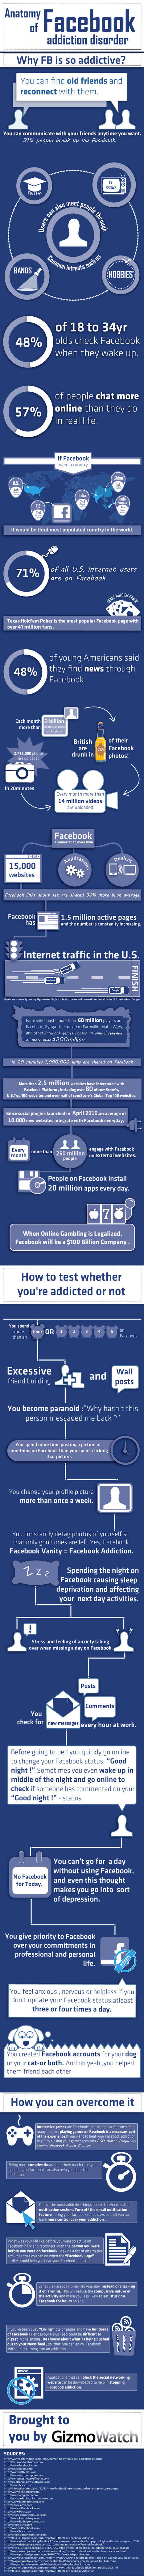 Anatomy of Facebook addiction disorder | Facebook…et ses techniques | Scoop.it